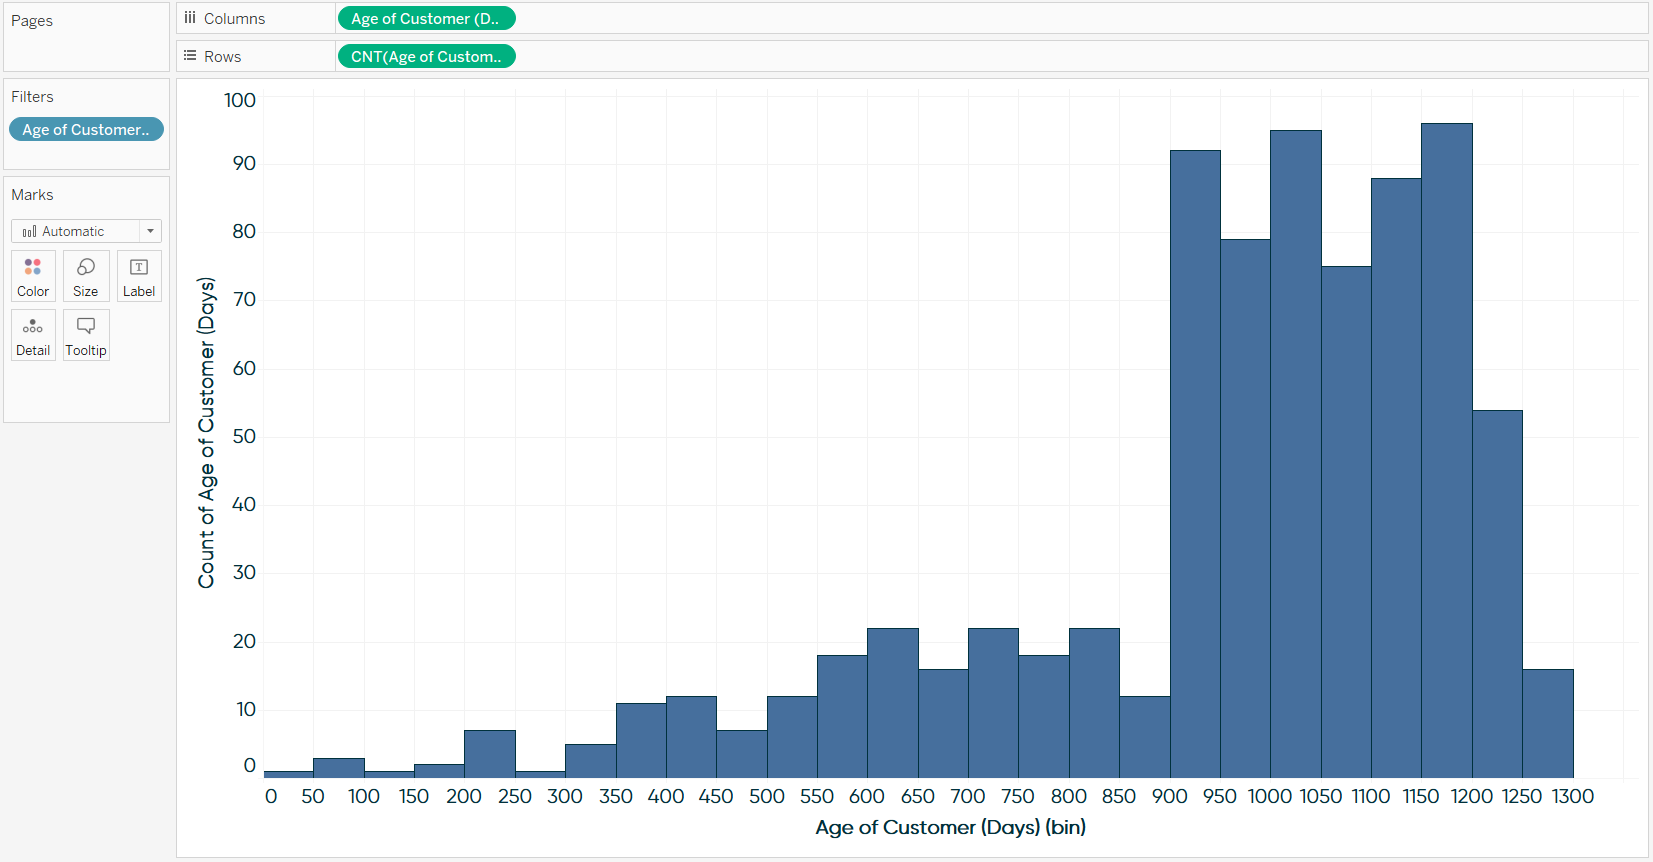 Histogram of Age of Customer (Days) in Tableau